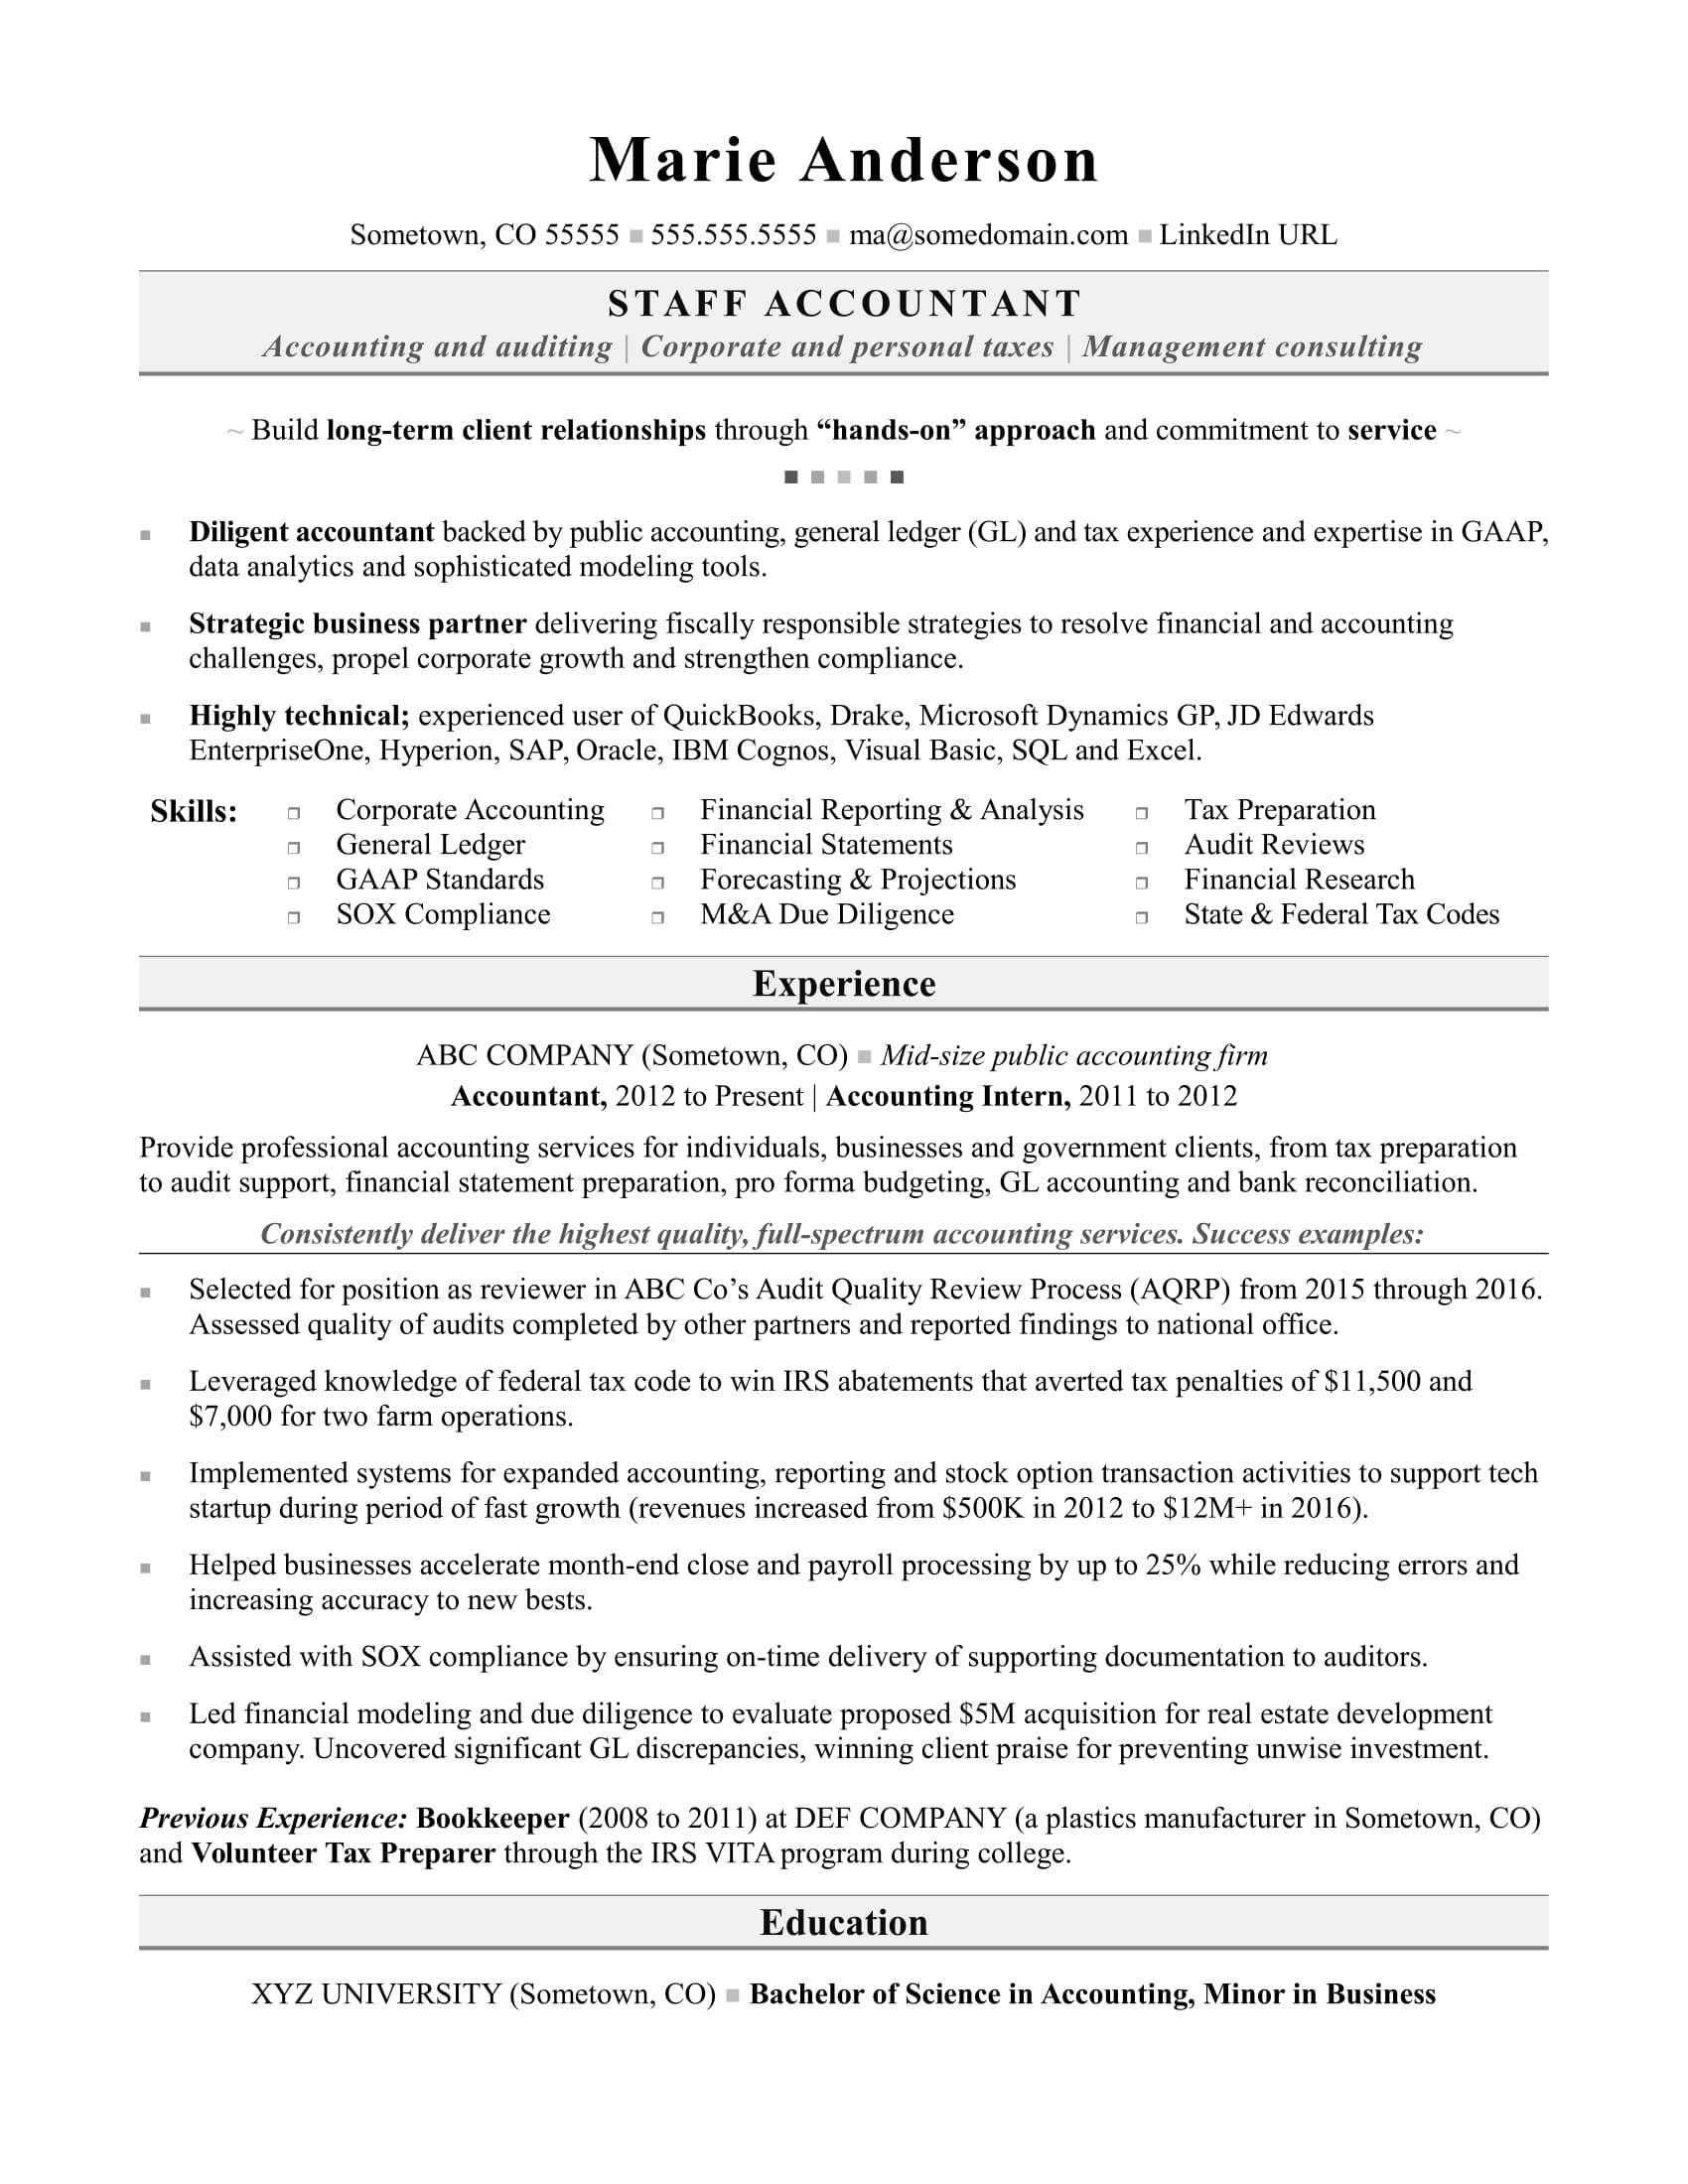 accounting resume sample monster accountant job description for lesson plan sourcing Resume Accountant Job Description For Resume